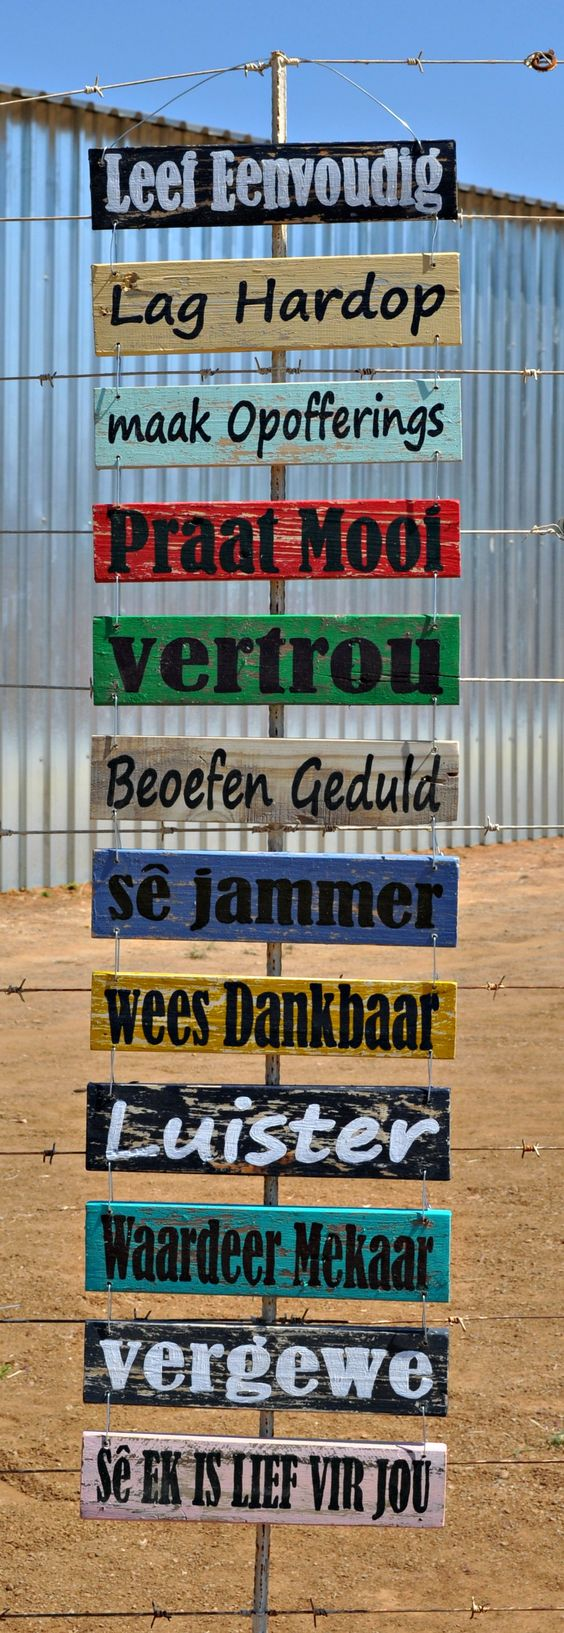 Wooden walls, Afrikaans and Art on Pinterest